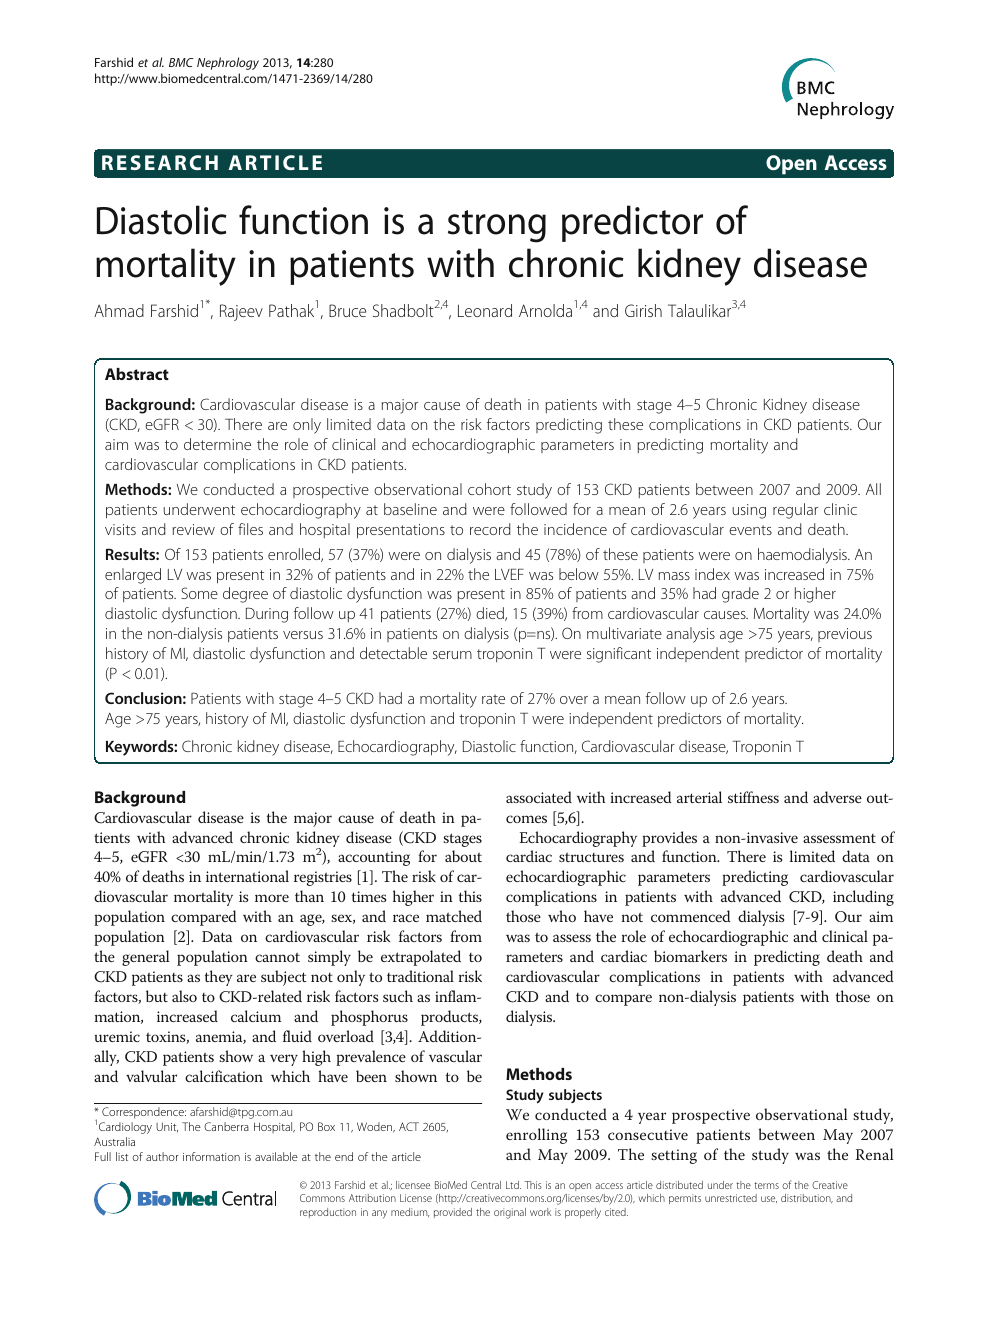 Diastolic function is a strong predictor of mortality in